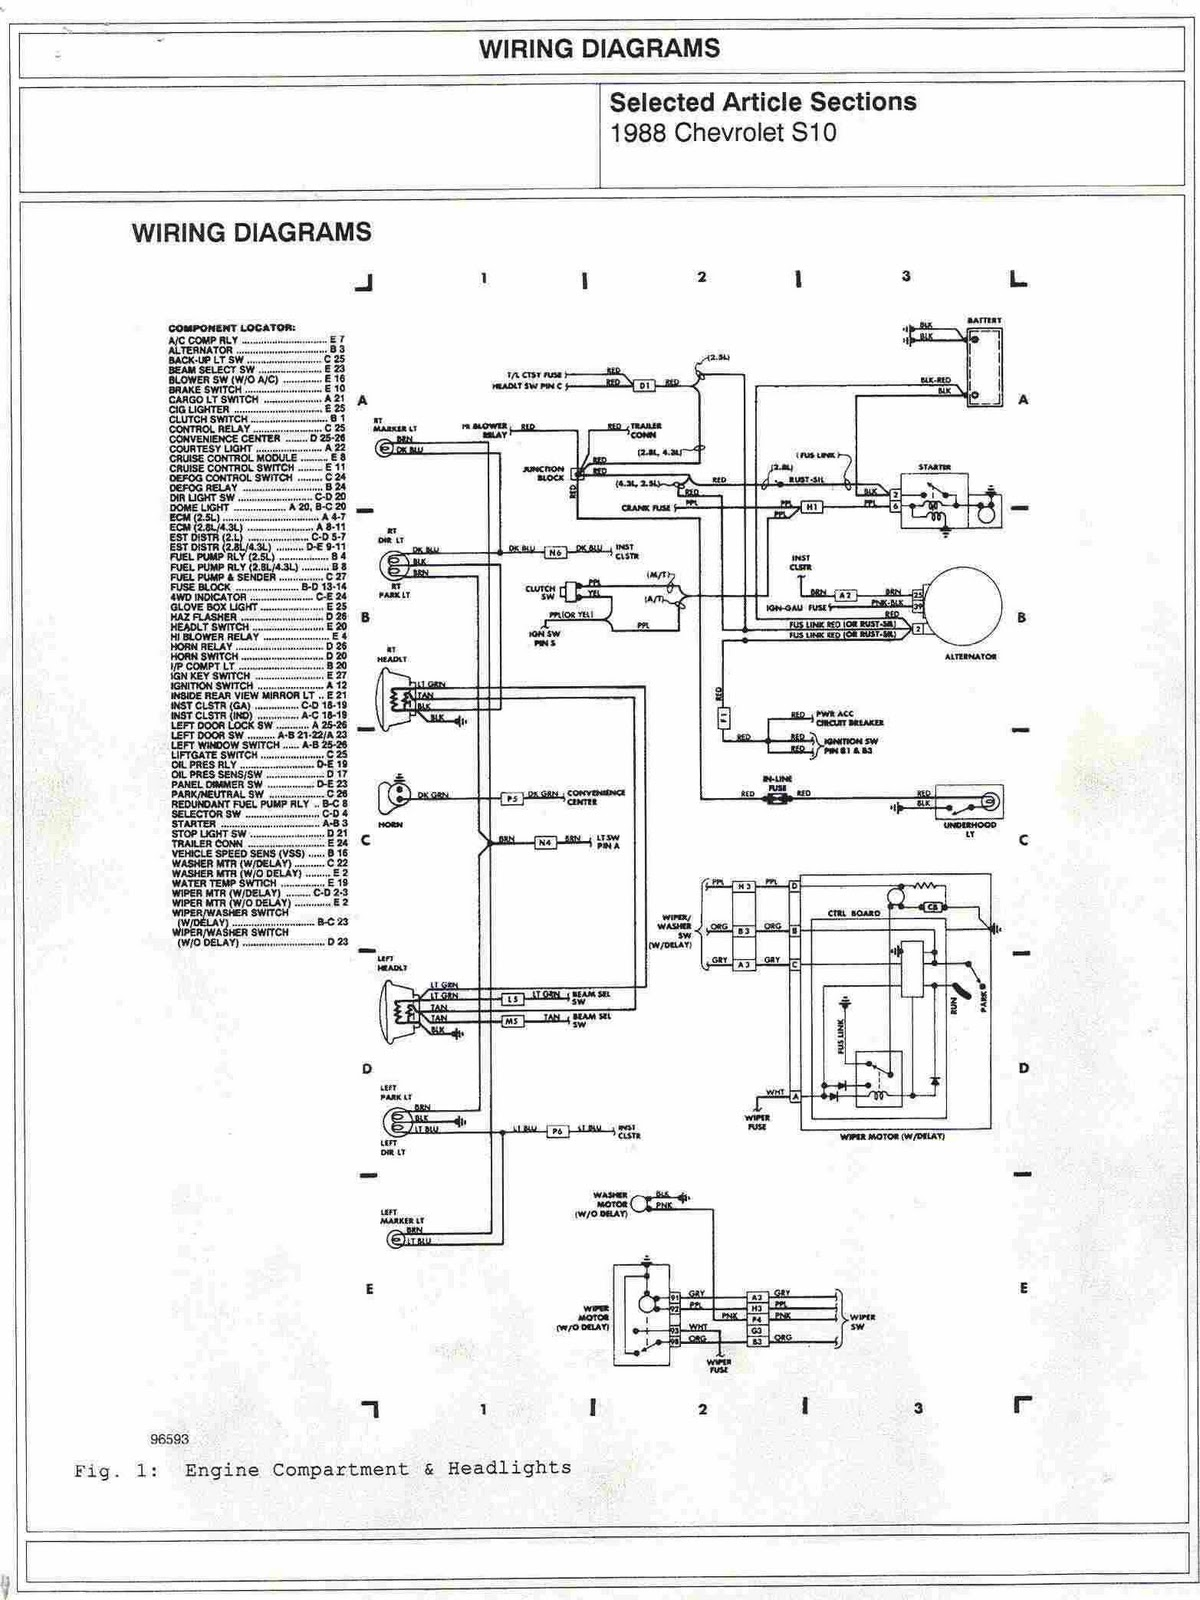 88 Toyota Pickup Tail Light Wiring Diagram Trusted Rear 87 Headlight U2022 For Free 85